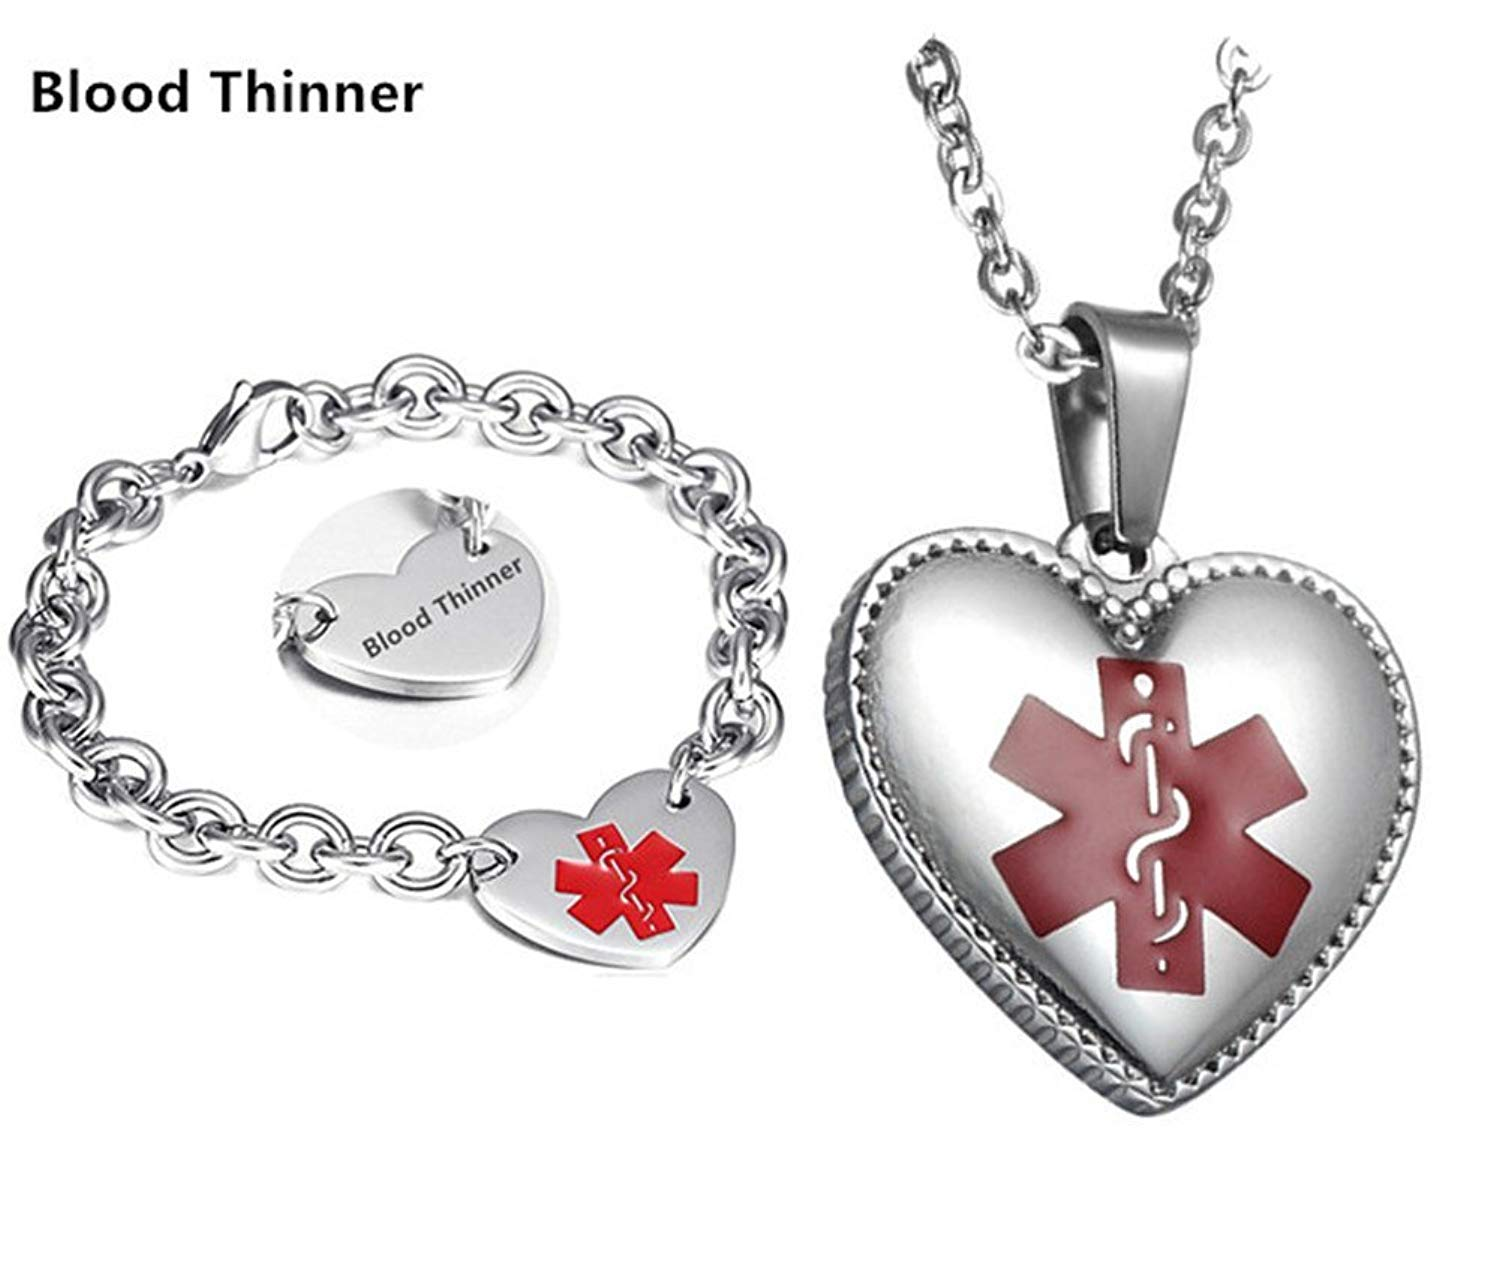 Cheap Free Medical Id Necklace, find Free Medical Id